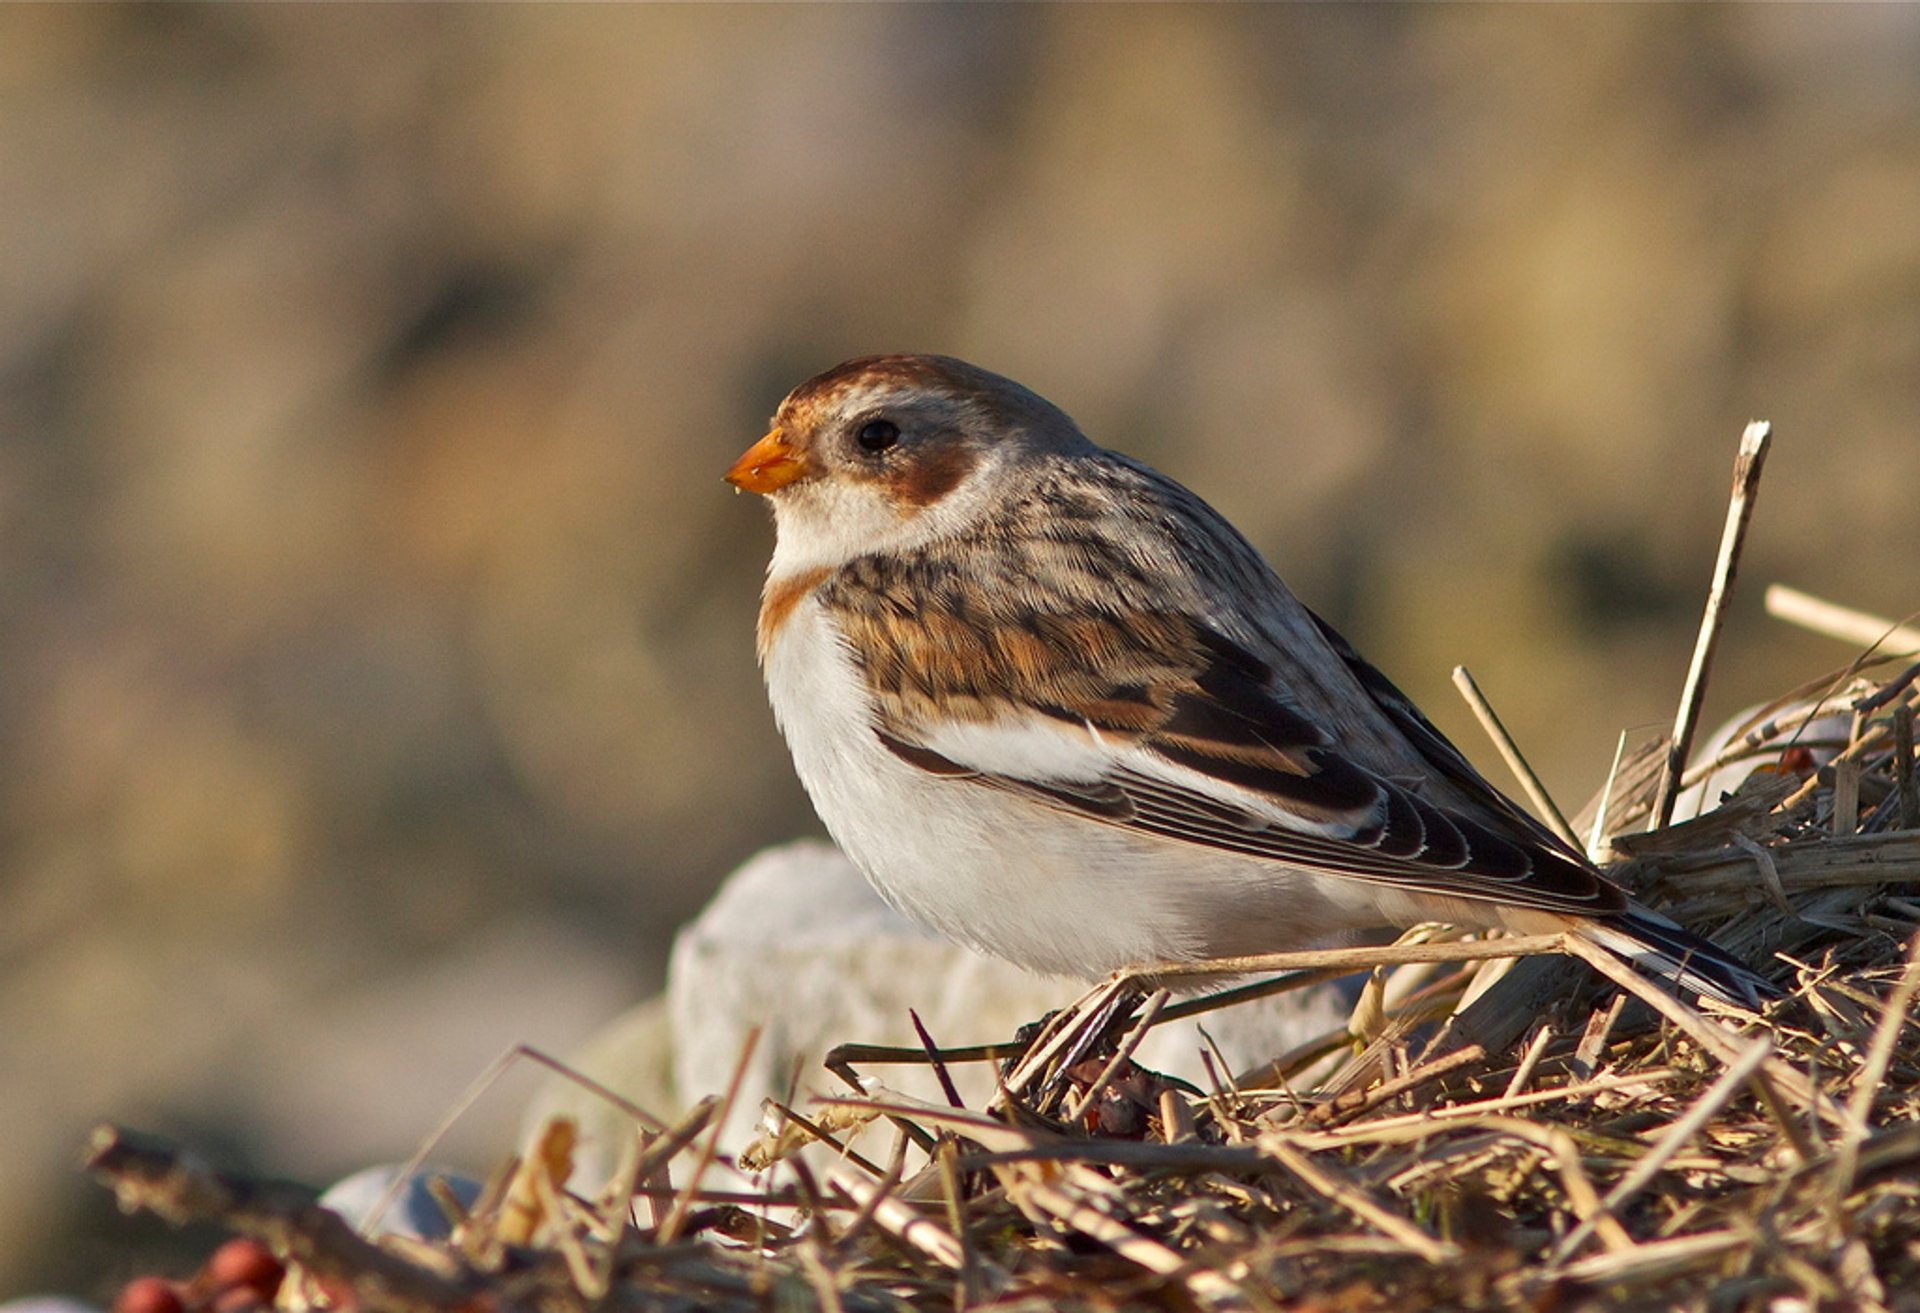 Snow Bunting at Red Wharf Bay, Wales, United Kingdom